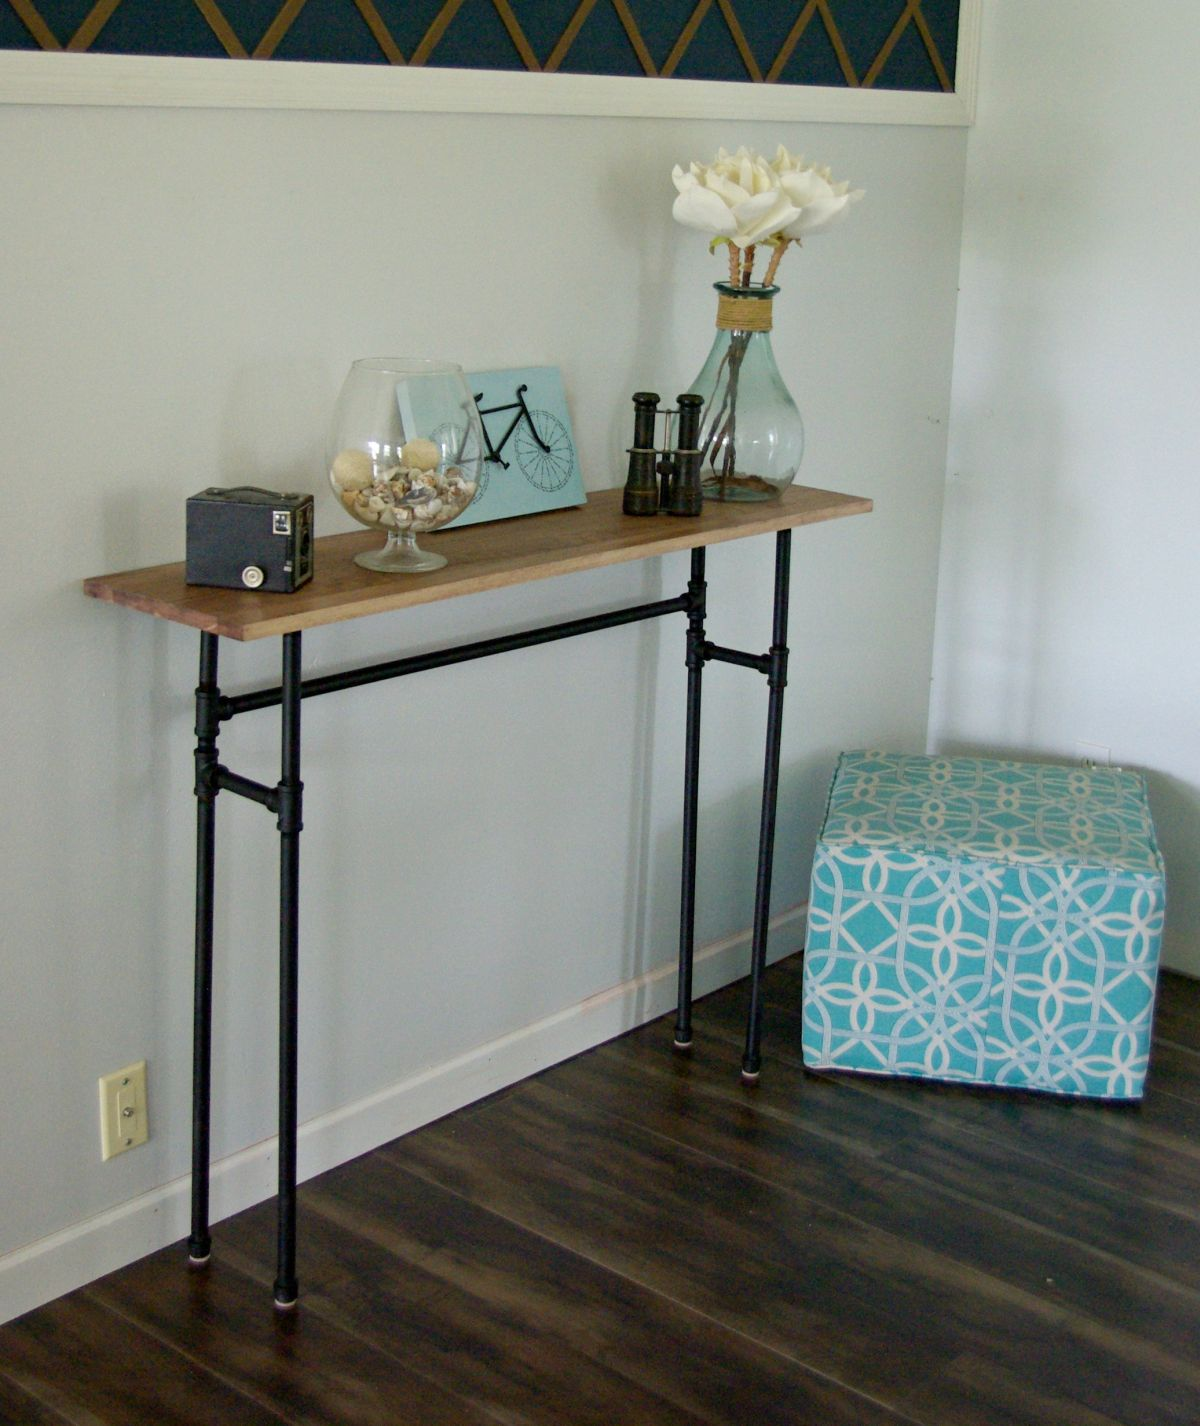 build a rustic sofa table milano singapore how to using galvanized pipes